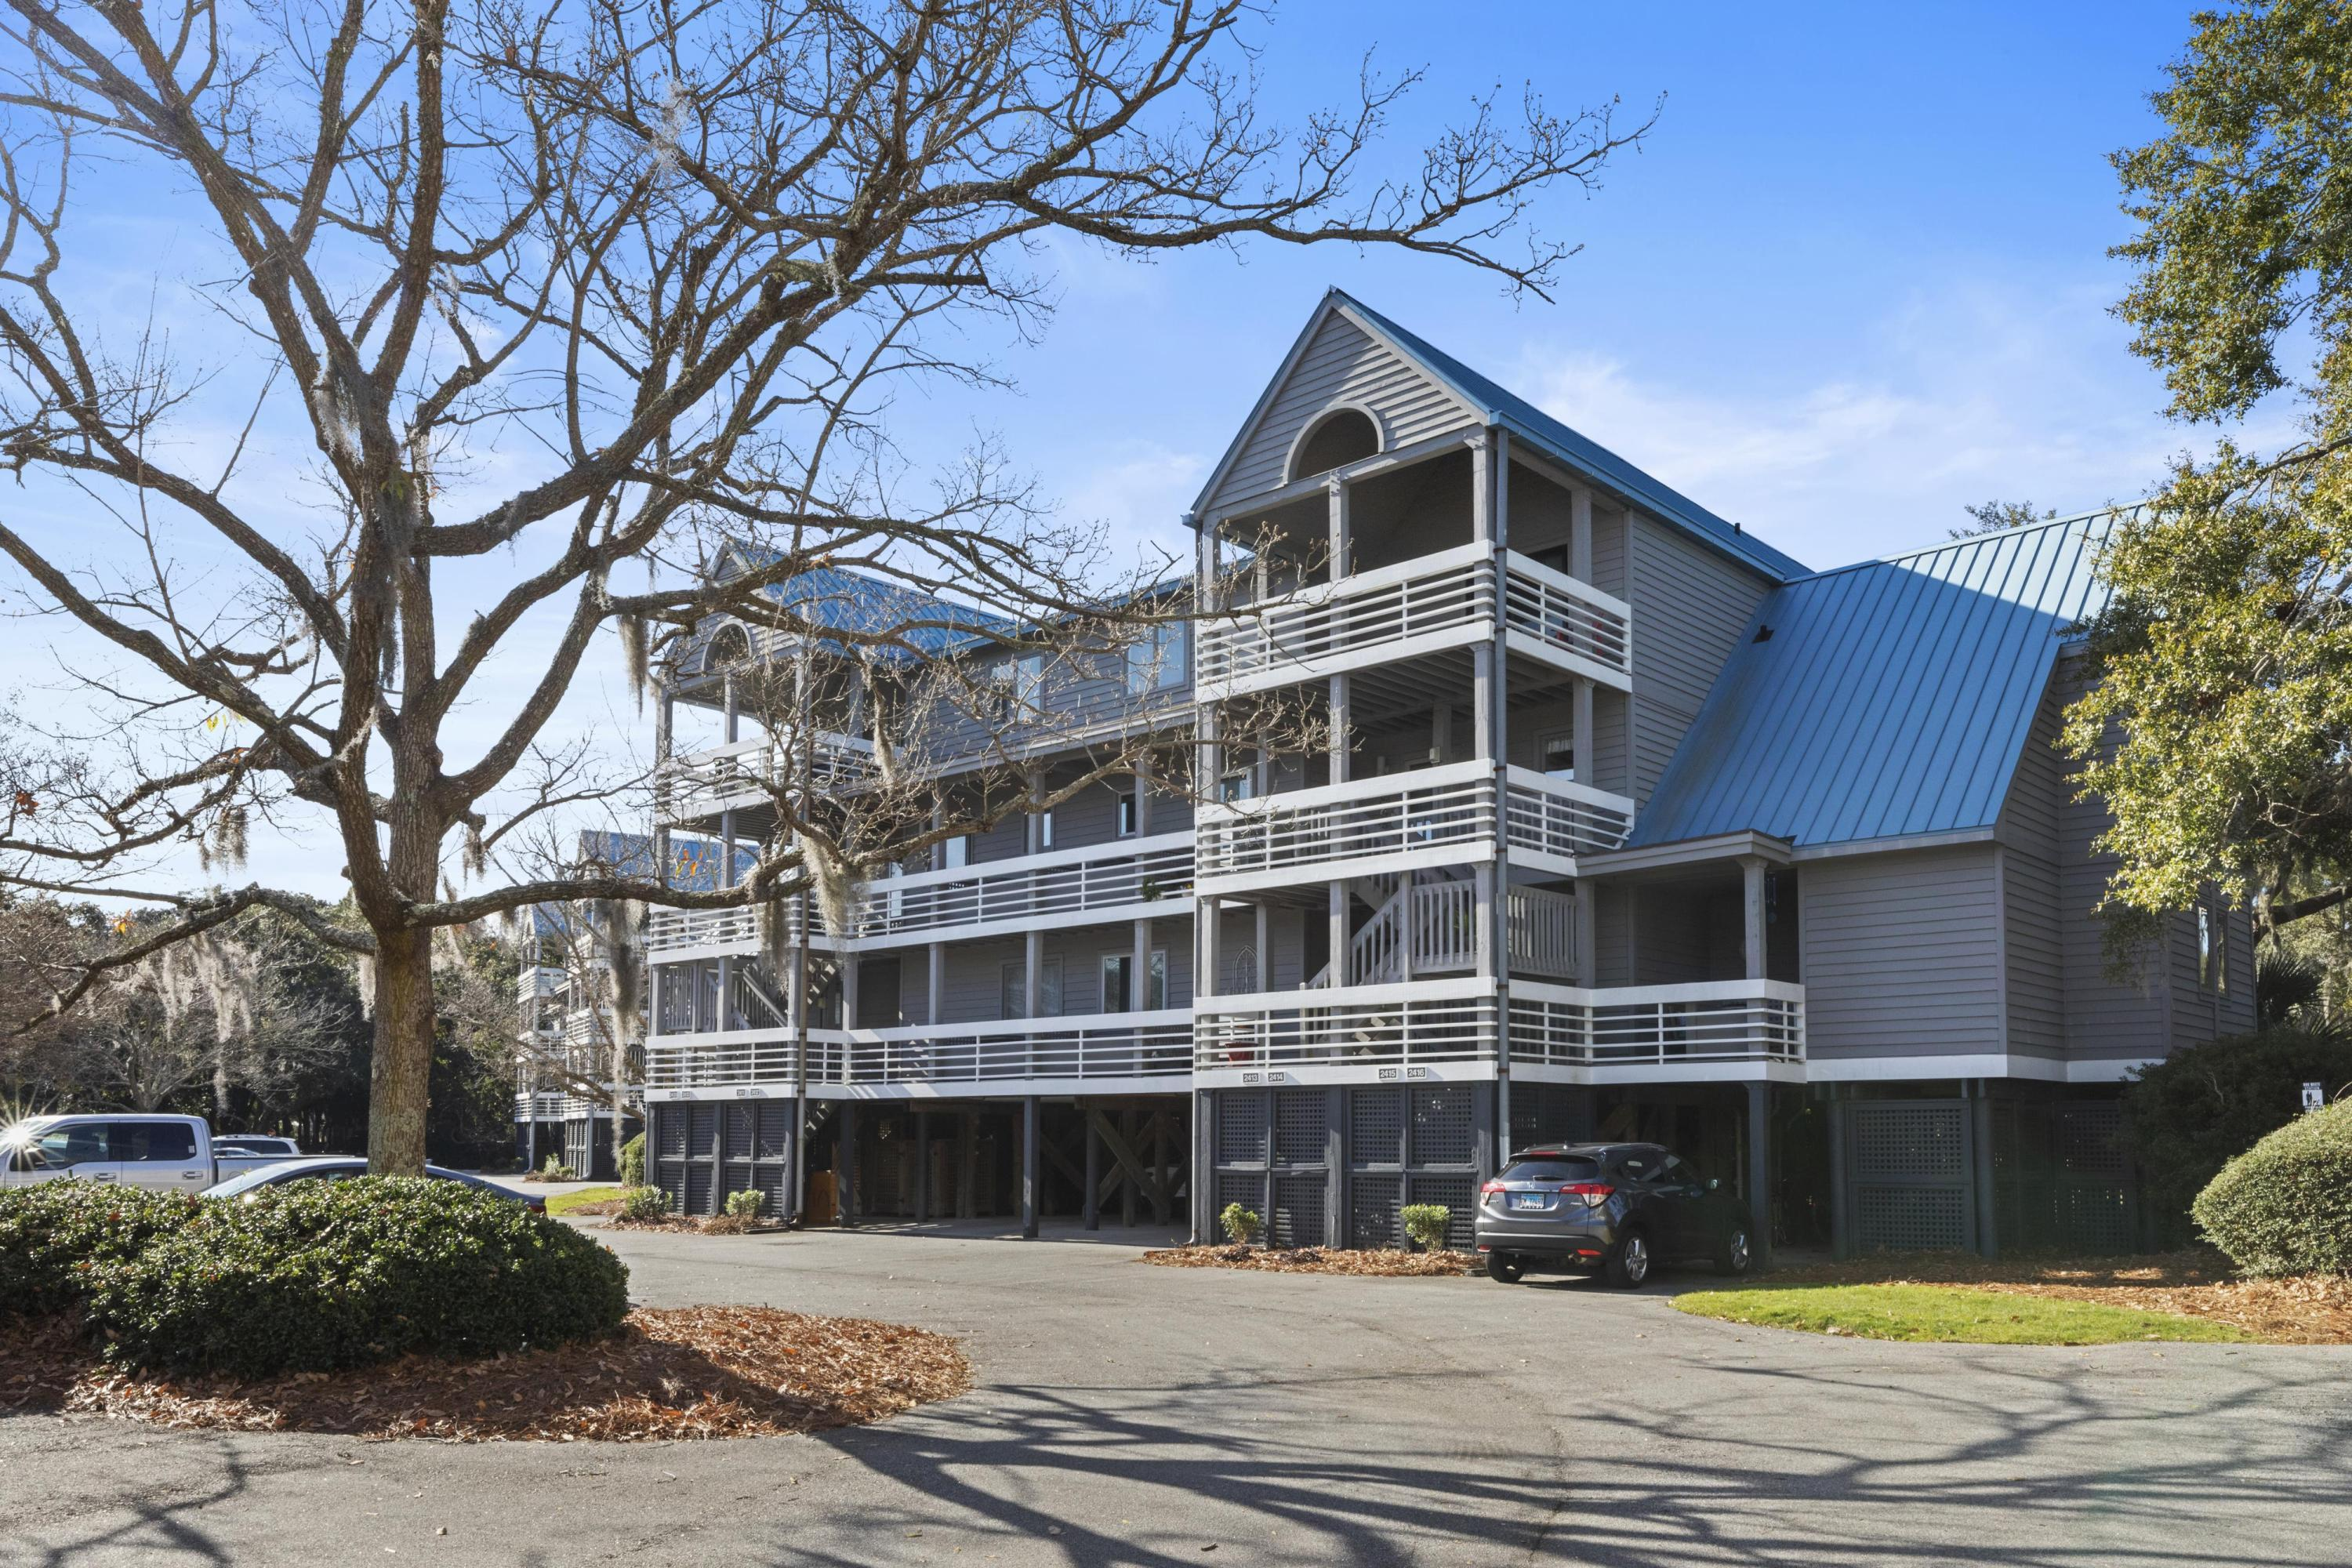 Seabrook Island Condos For Sale - 2416 Racquet Club, Seabrook Island, SC - 24